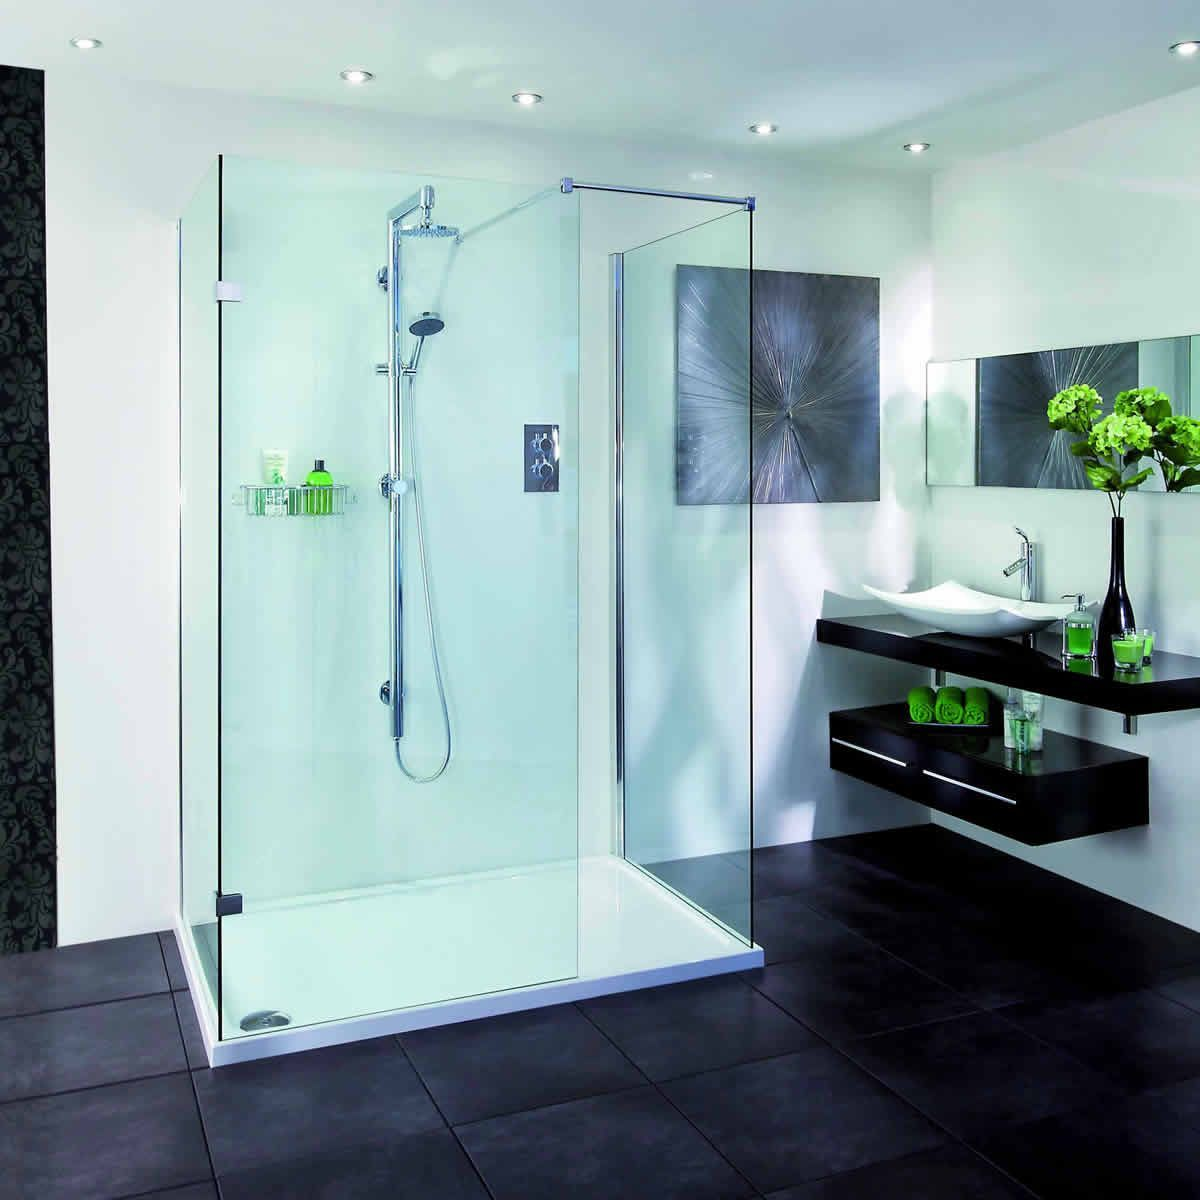 Aqata Spectra Walk-In 3 sided Shower Enclosure SP415 | Shower ...